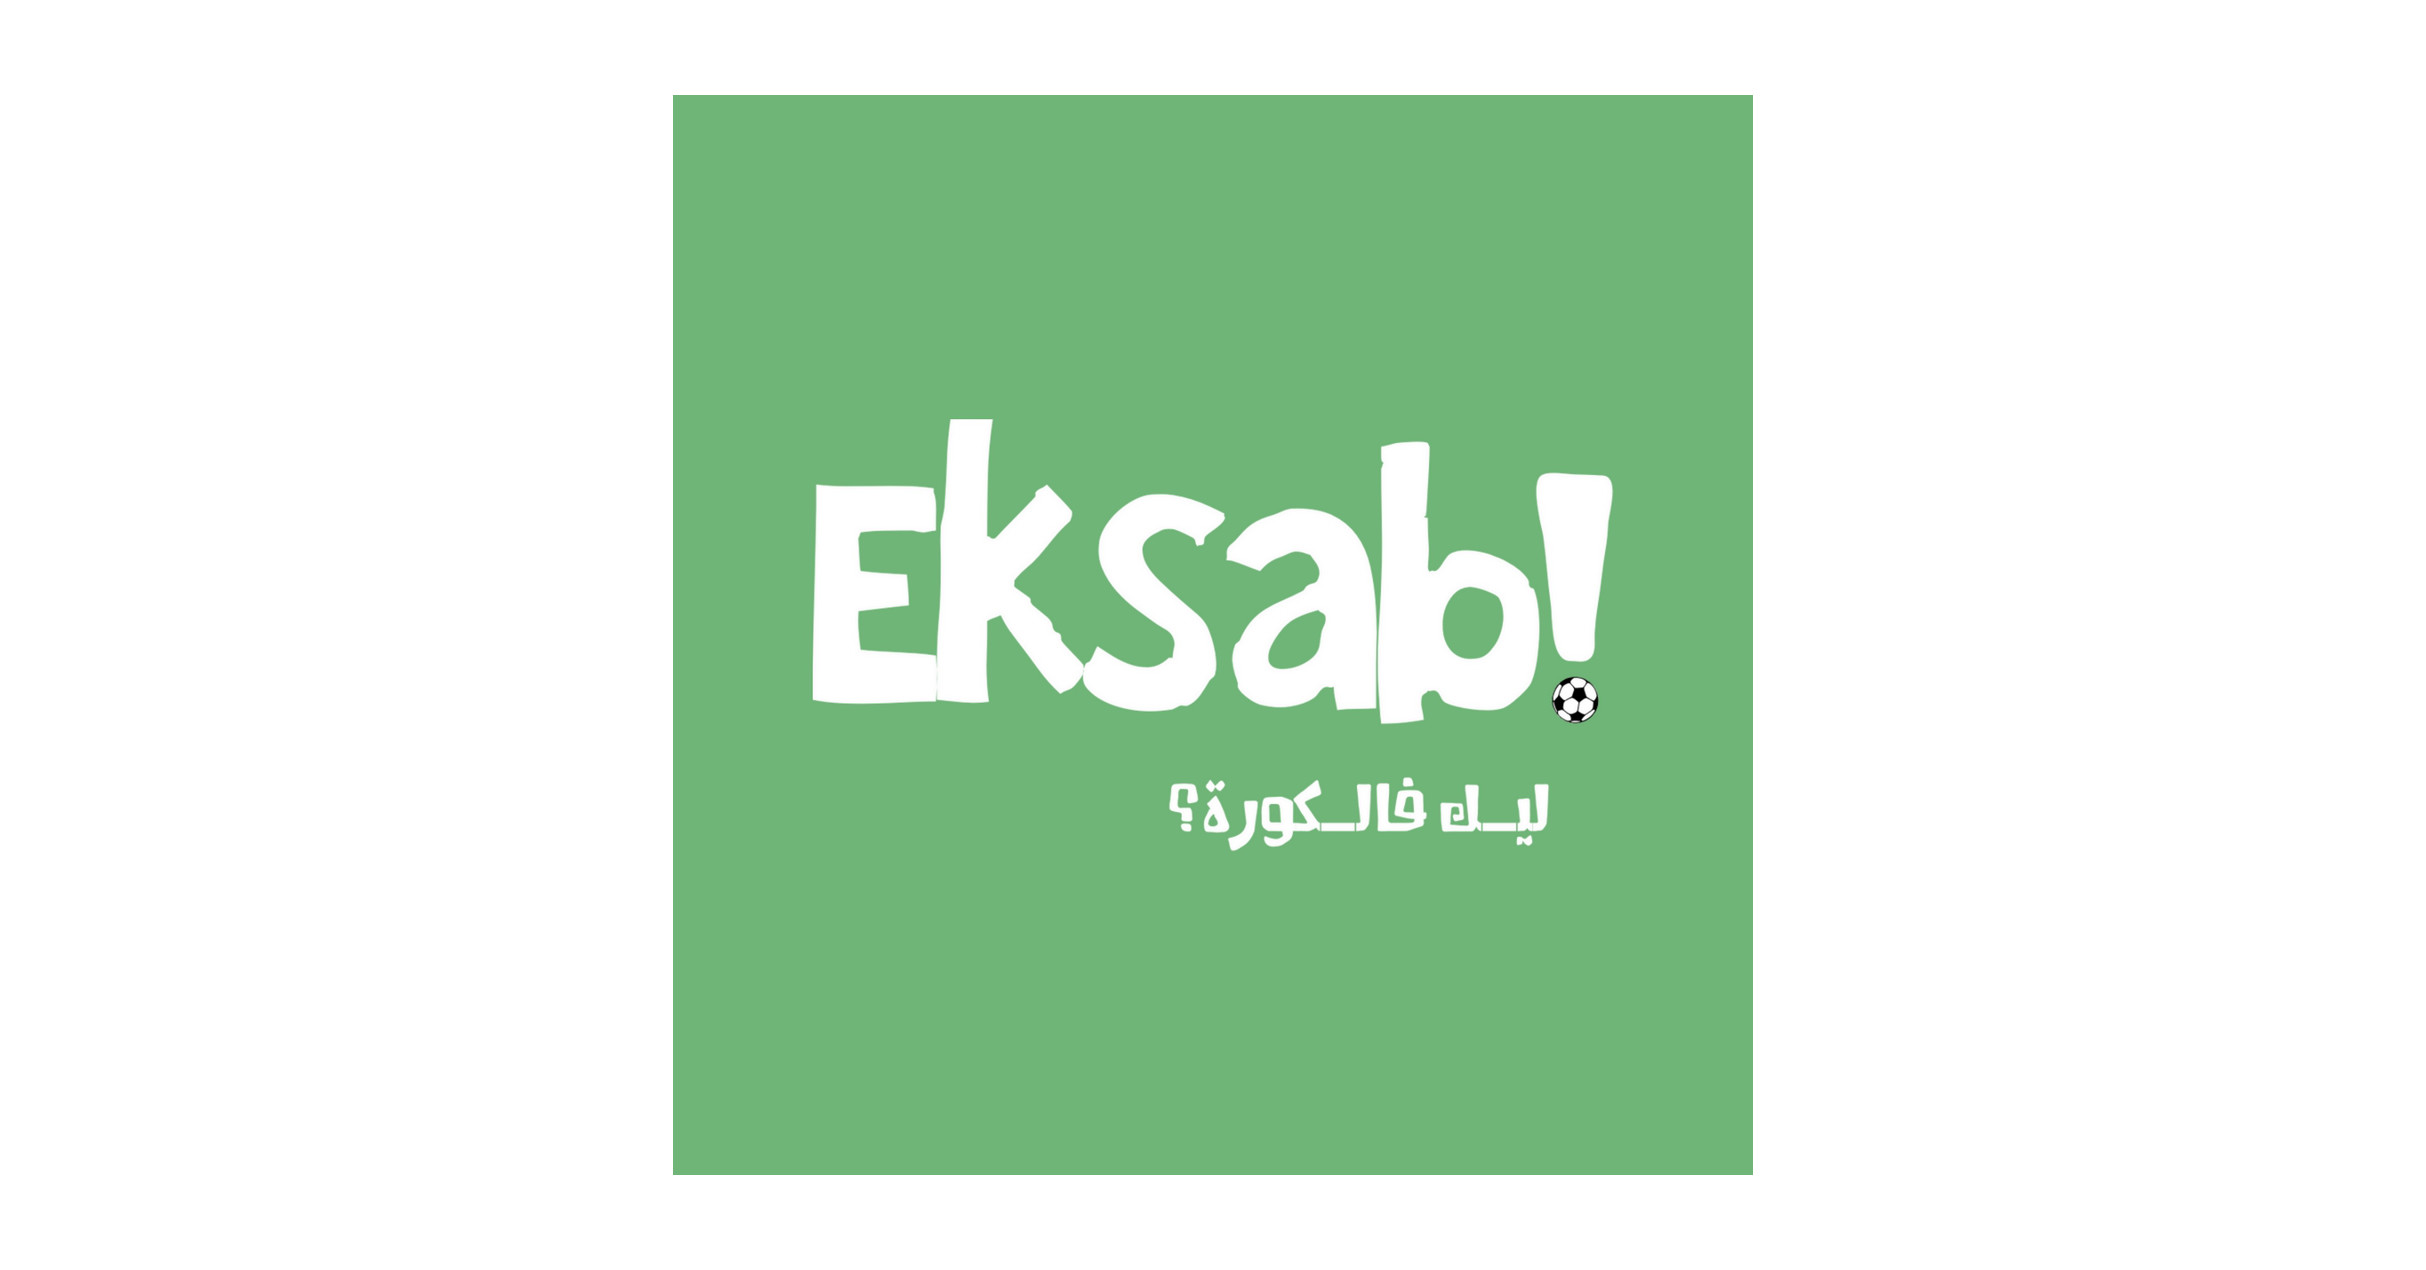 Job: Senior PHP Developer at Eksab in Cairo, Egypt